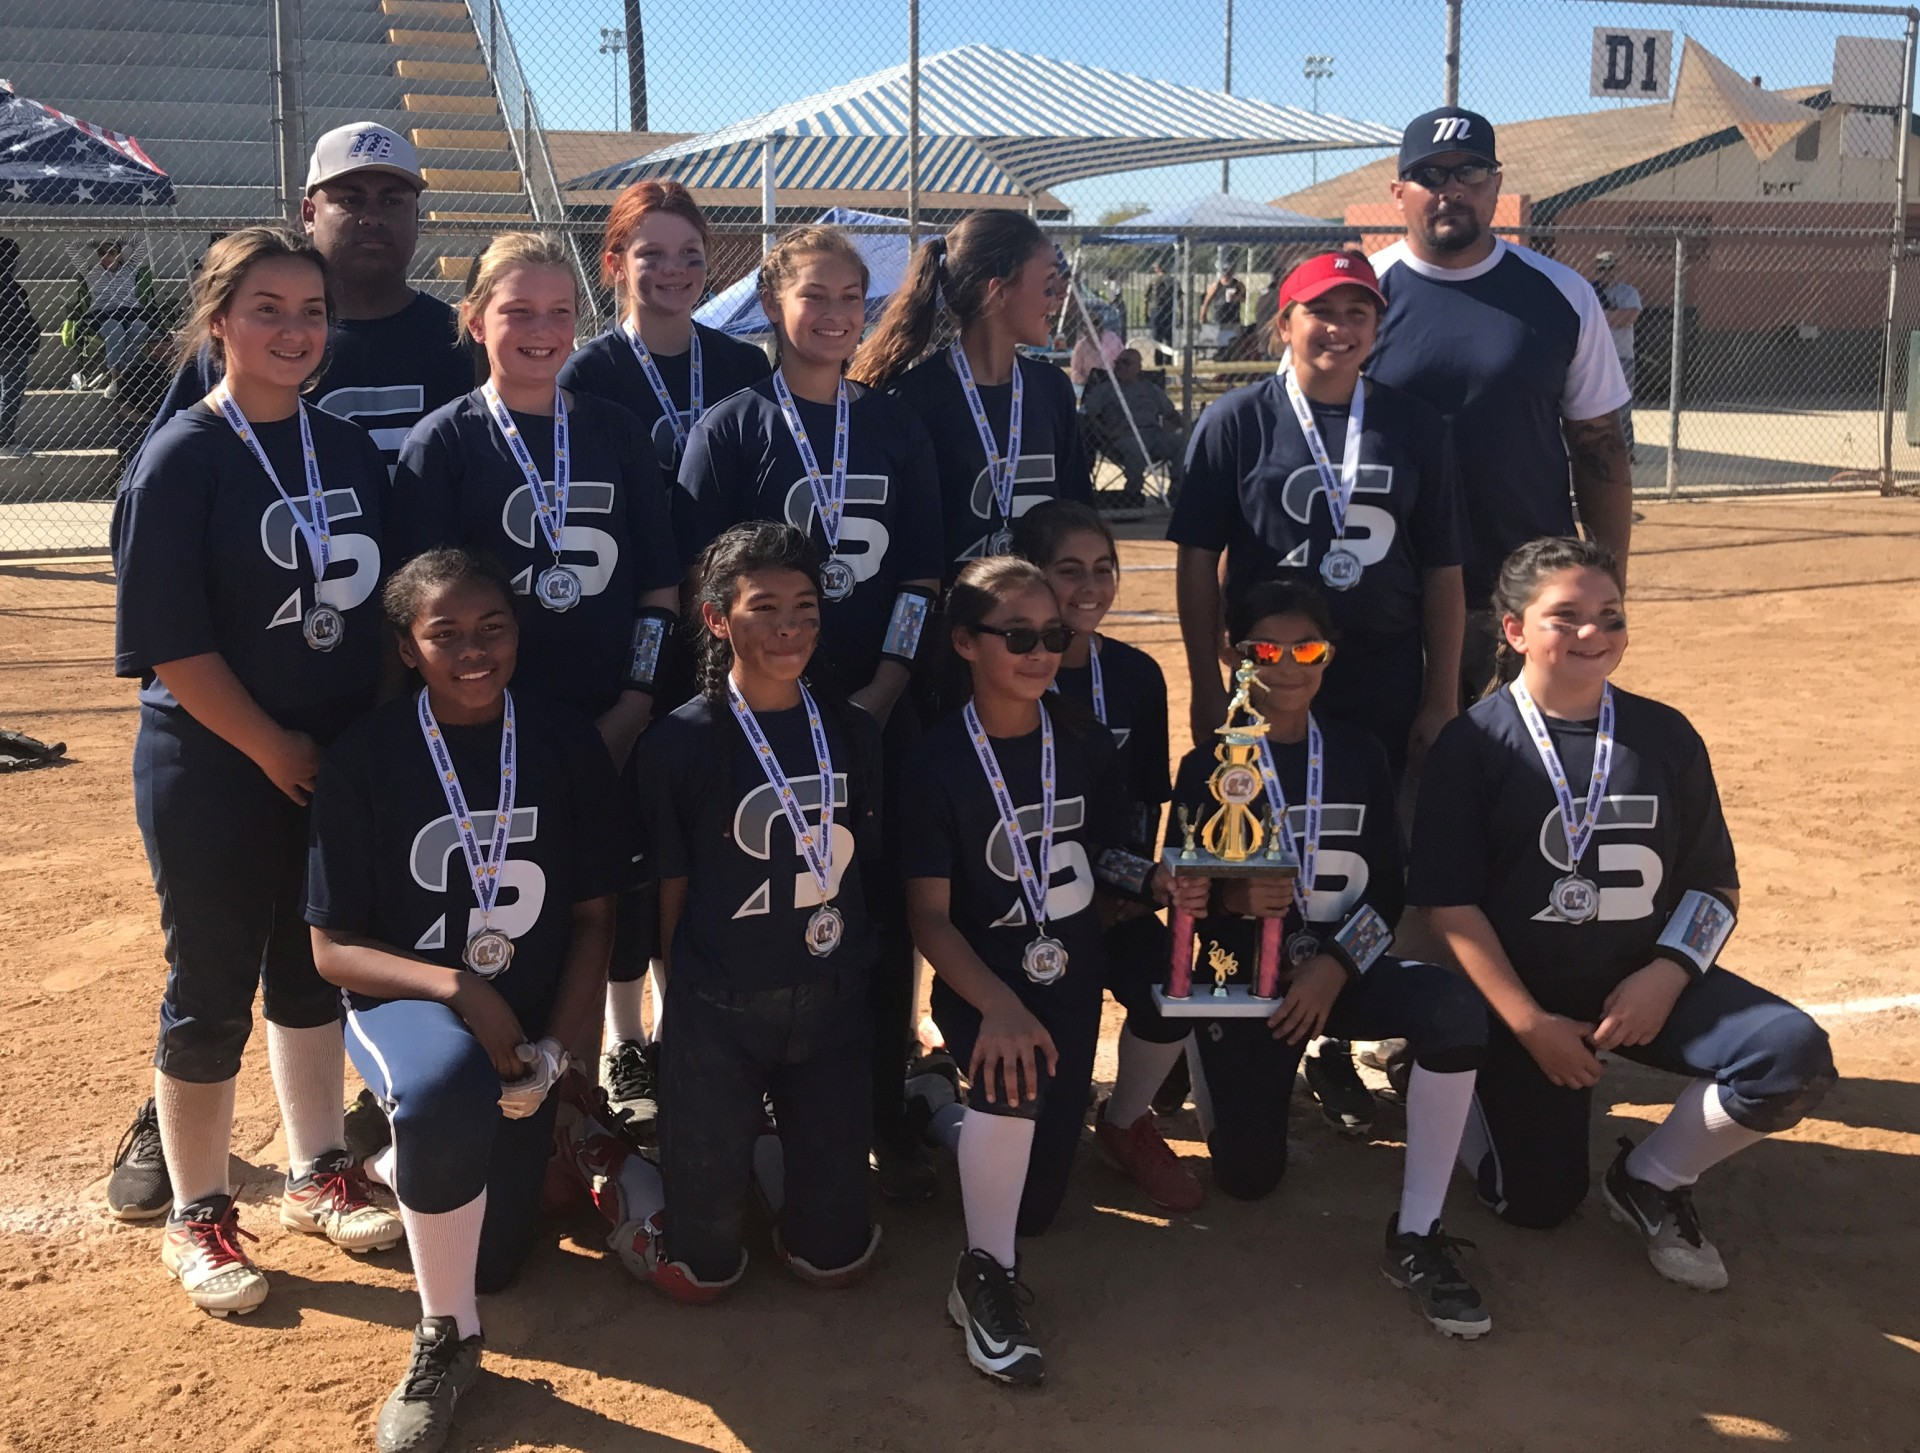 12u - Runner Up - Strikeforce